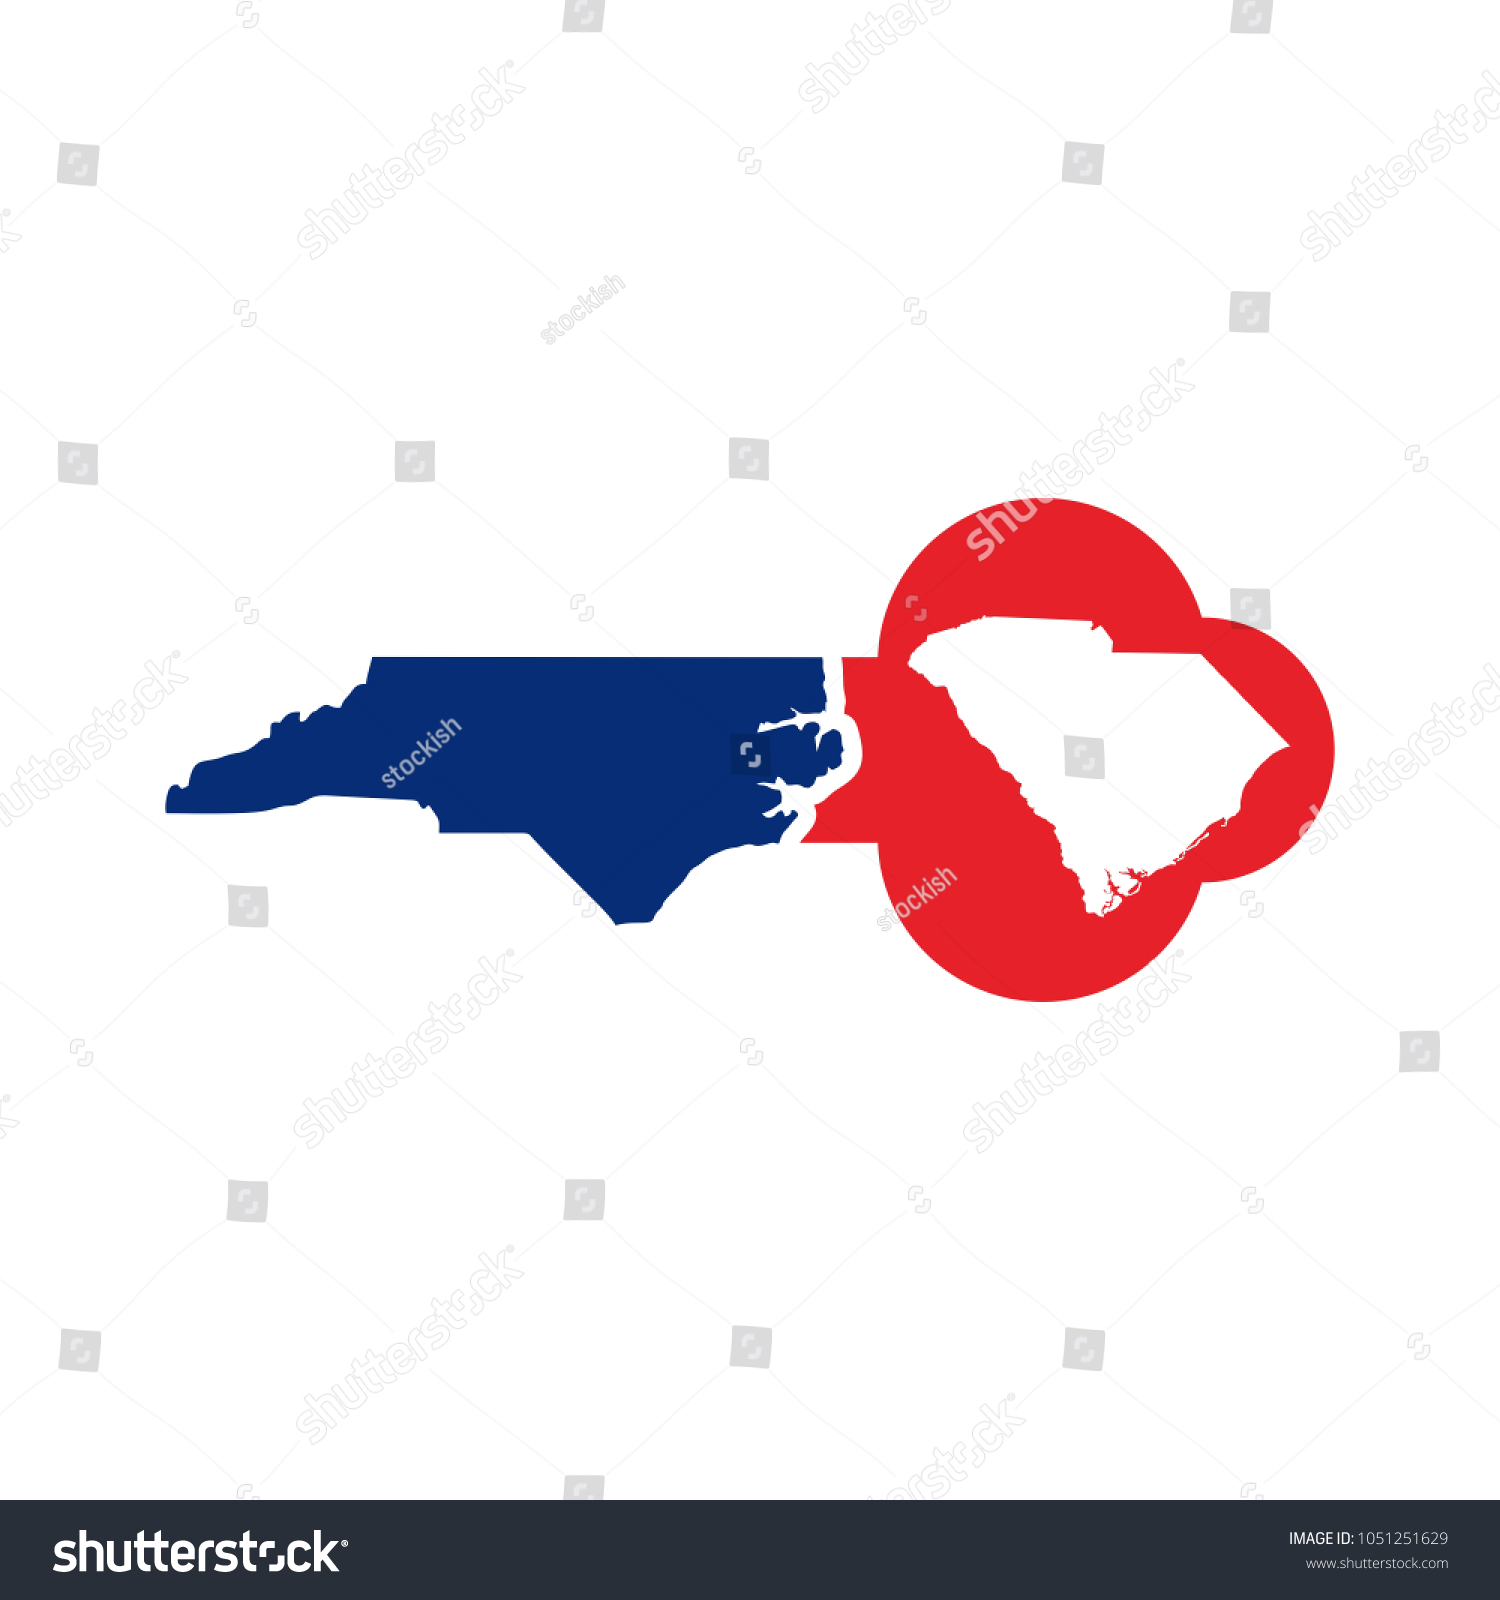 North South Carolina Map.South Carolina North Carolina Map Key Stock Vector Royalty Free